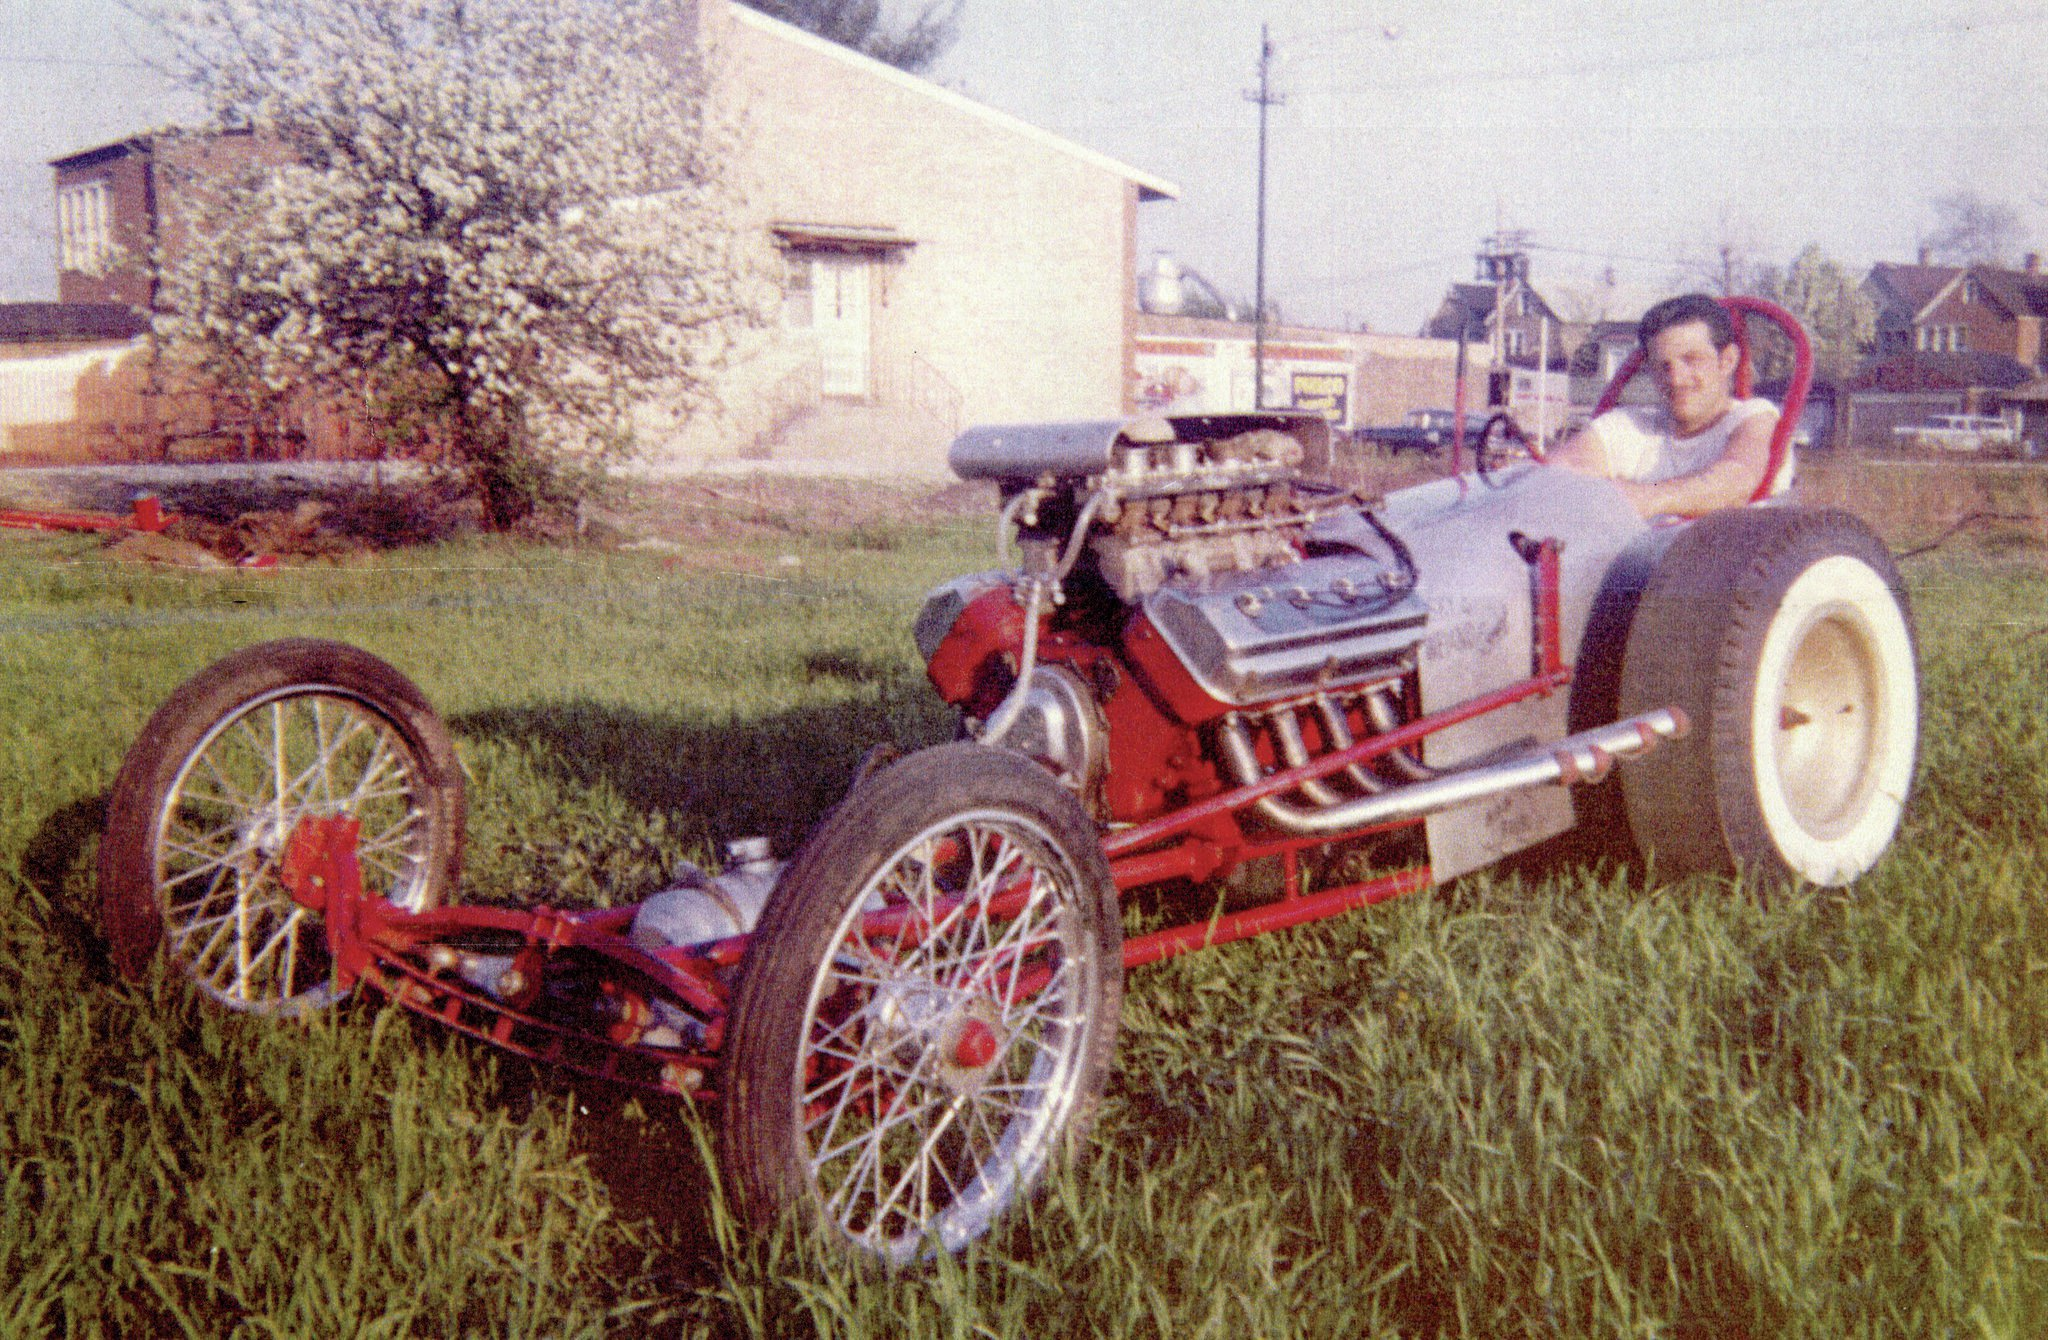 Karamesines built his first dragster in 1955 and posed with it next to his home. A carbureted Chrysler on nitromethane provided power for the 88-inch-wheelbase, homebuilt rail. Whitewalls and bright-red paint made it a luxury ride.